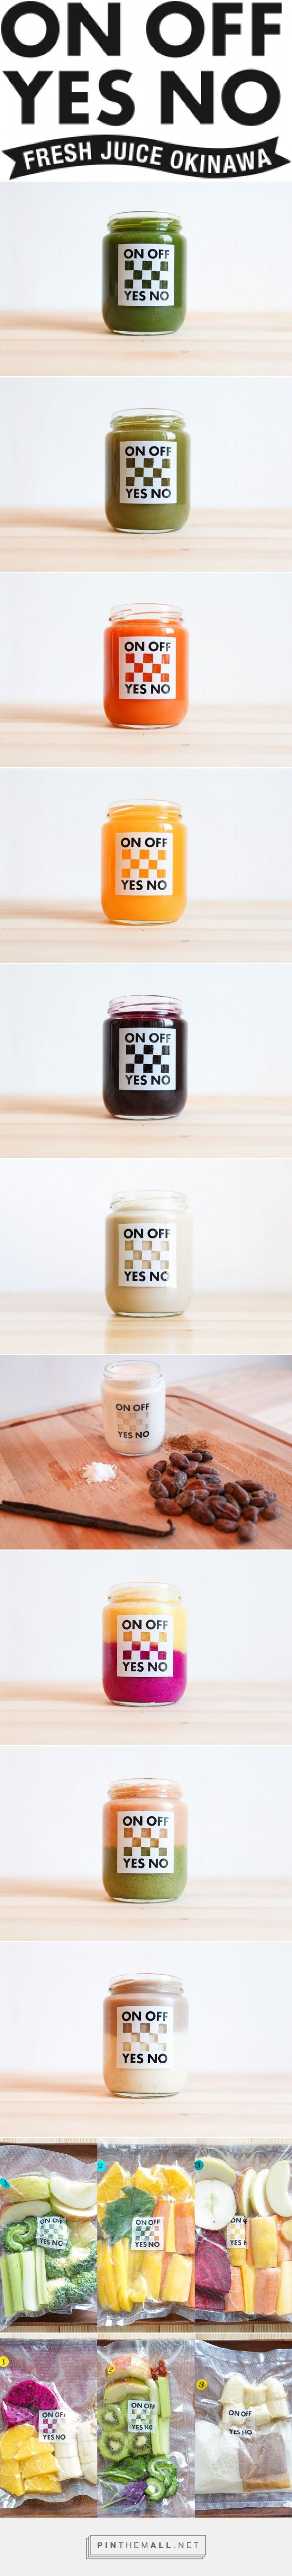 ON OFF YES NO packaging branding 沖縄野菜・果物を使ったコールドプレスジュース専門店 curated by Packaging Diva PD. Juices look delish don't they?